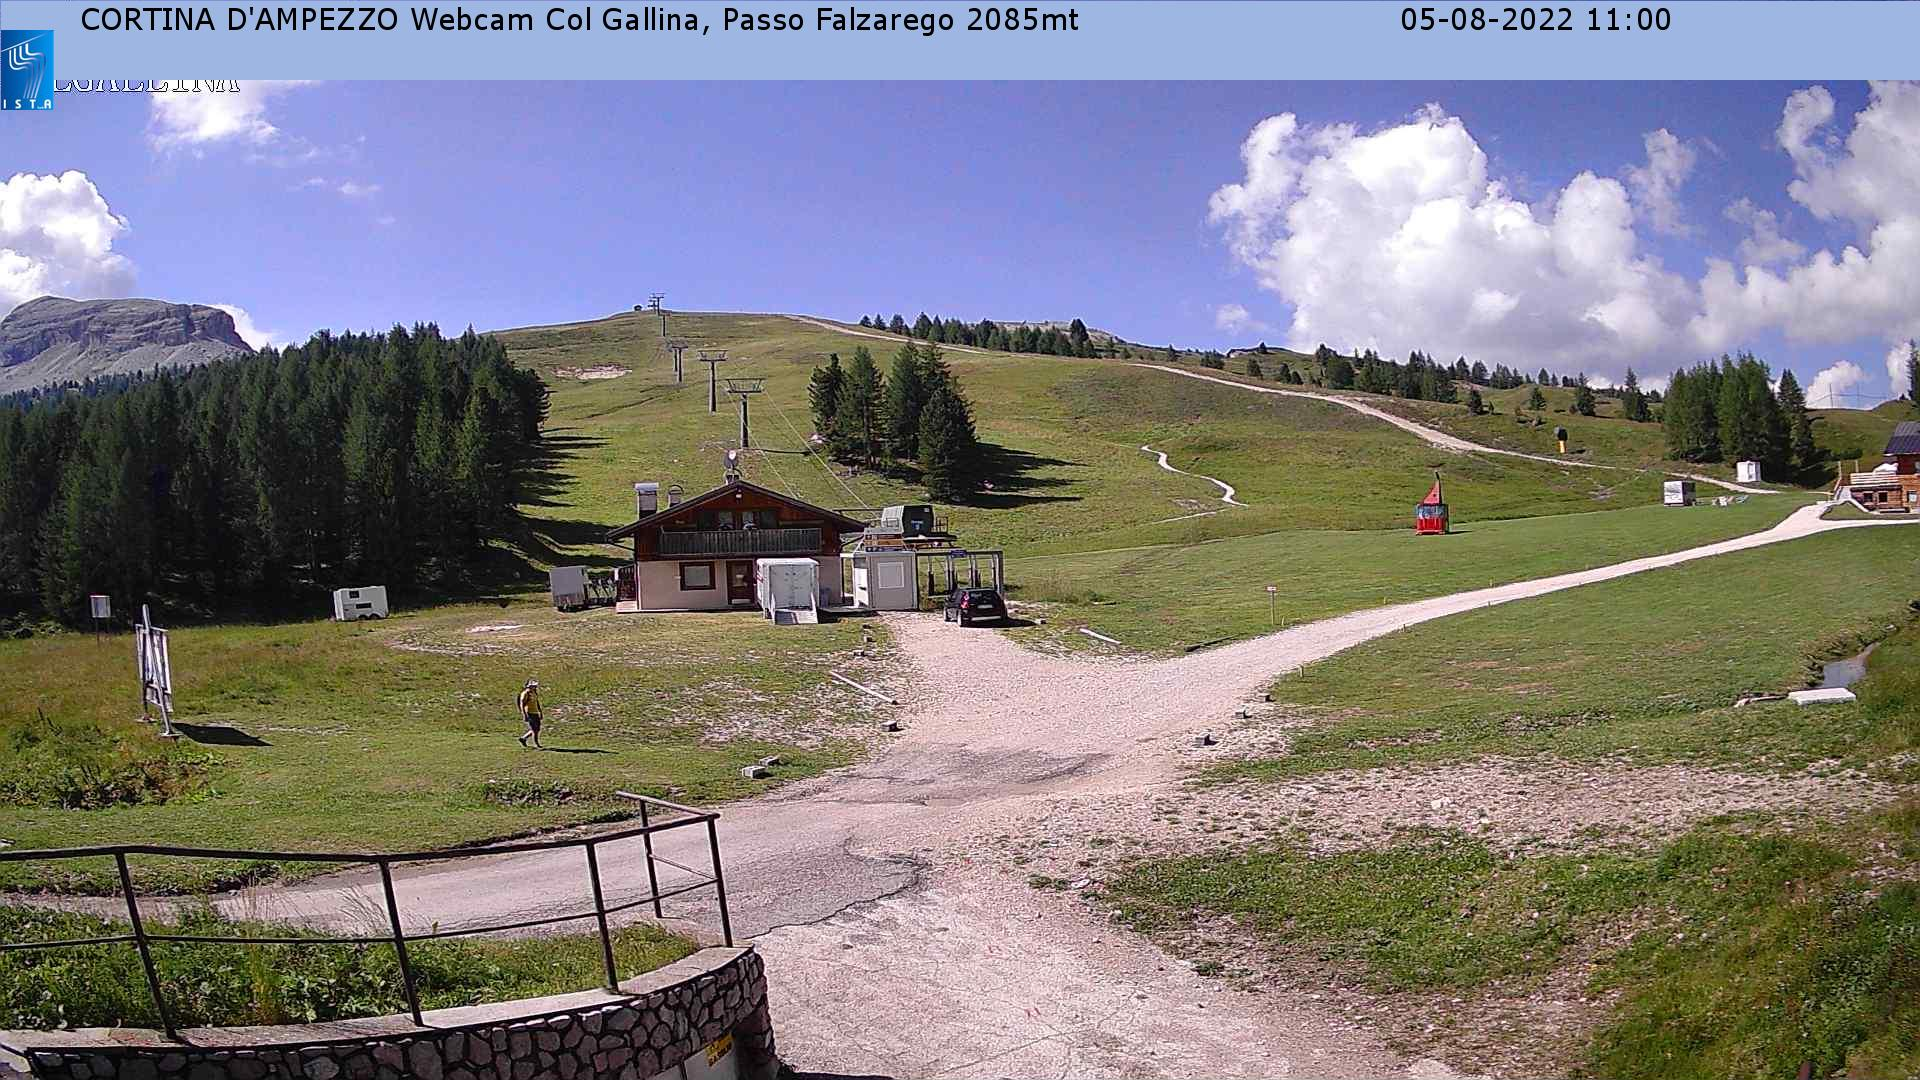 Cortina - Col Gallina